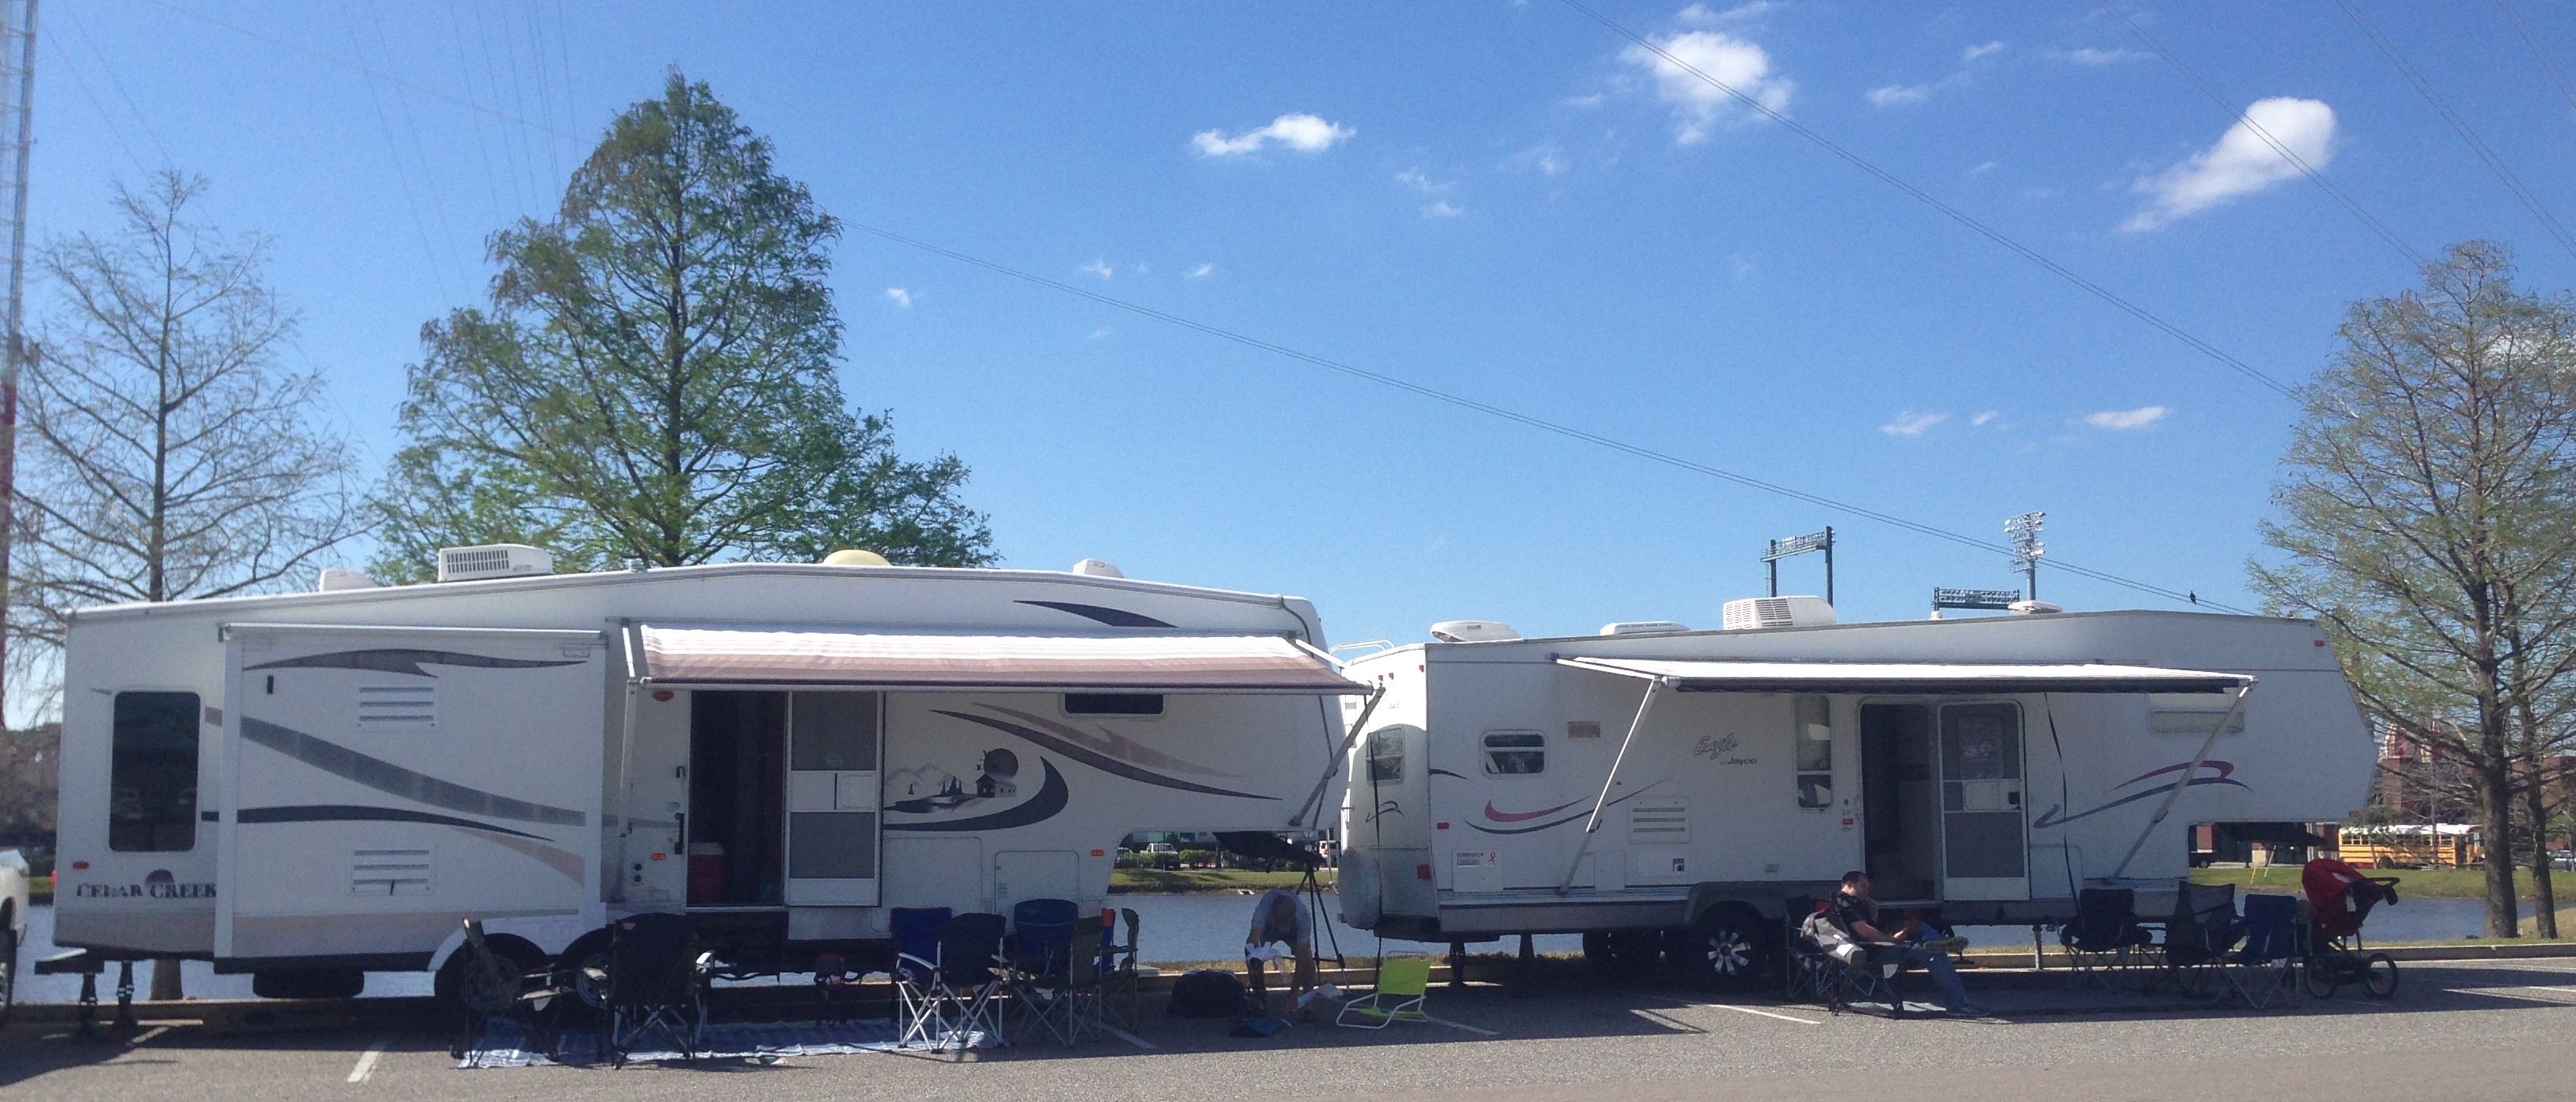 camper/rvs at the Gate River Run